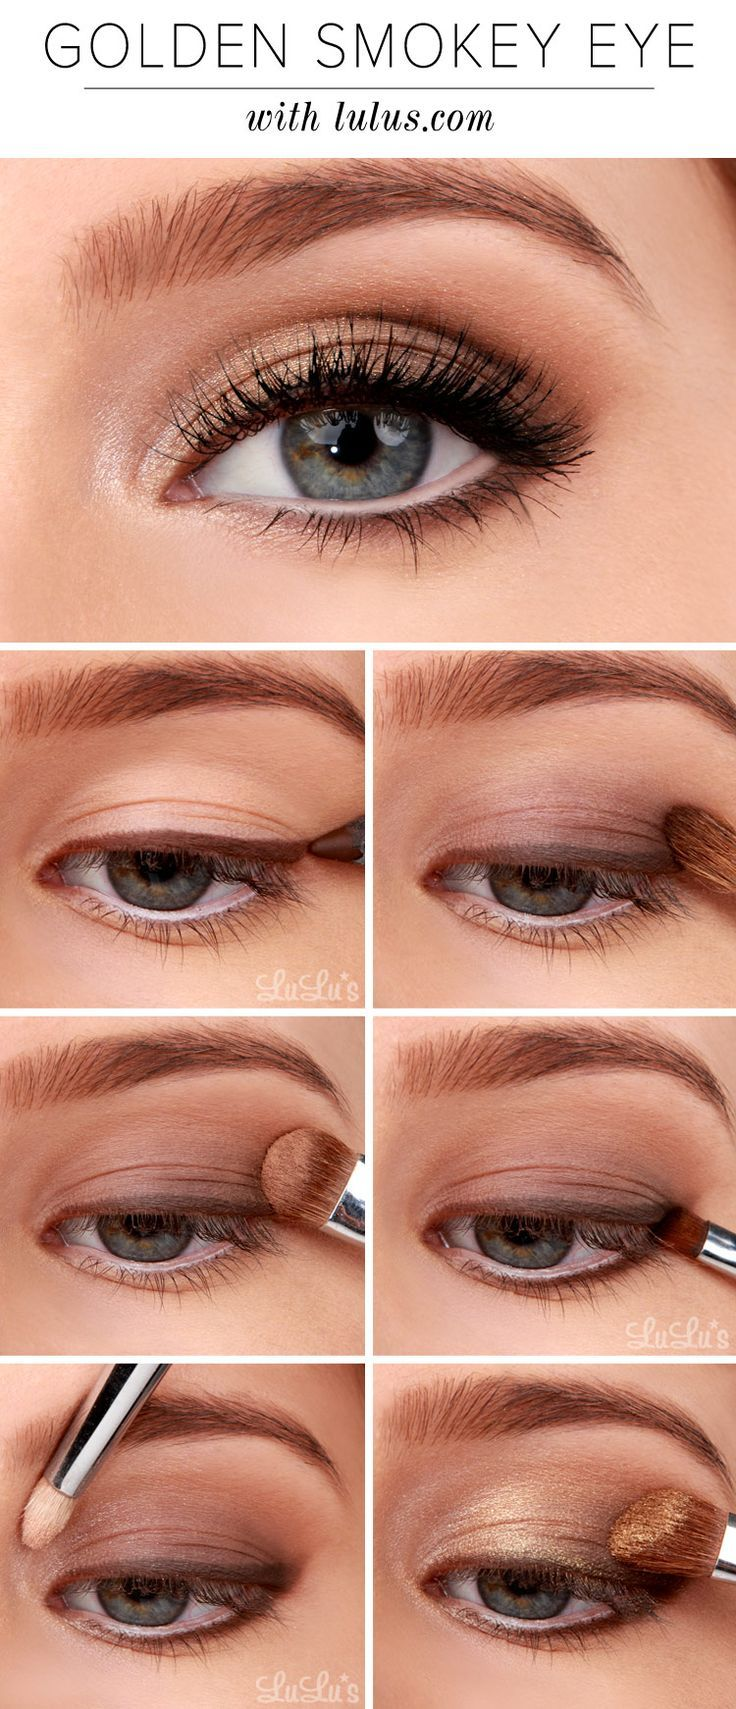 How to : Easy Golden smokey eyes makeup tutorials